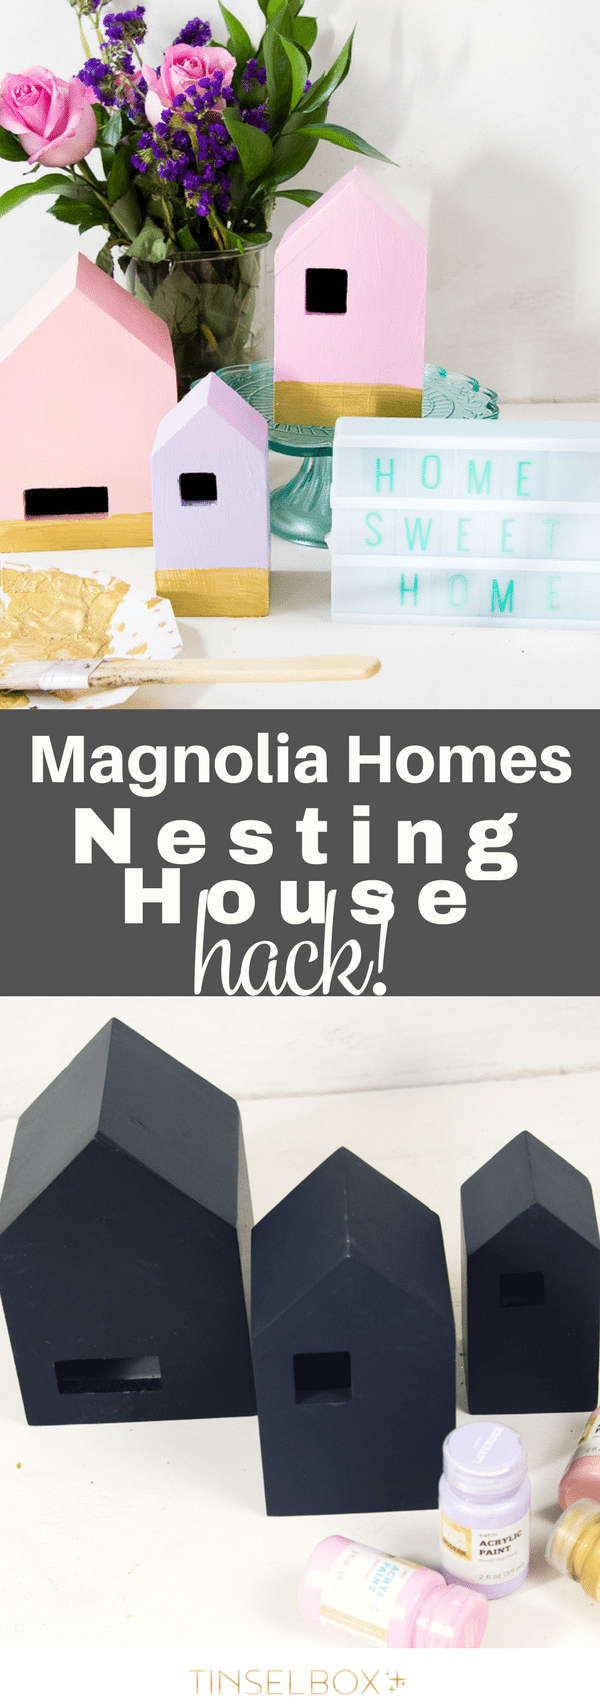 These Magnolia Home decor nesting houses are too fun. We hacked them to be bright and colorful with gold painted trim.  Your home decor will sparkle with this fun DIY project. #magnoliahome #DIY #hack #hearthandhand